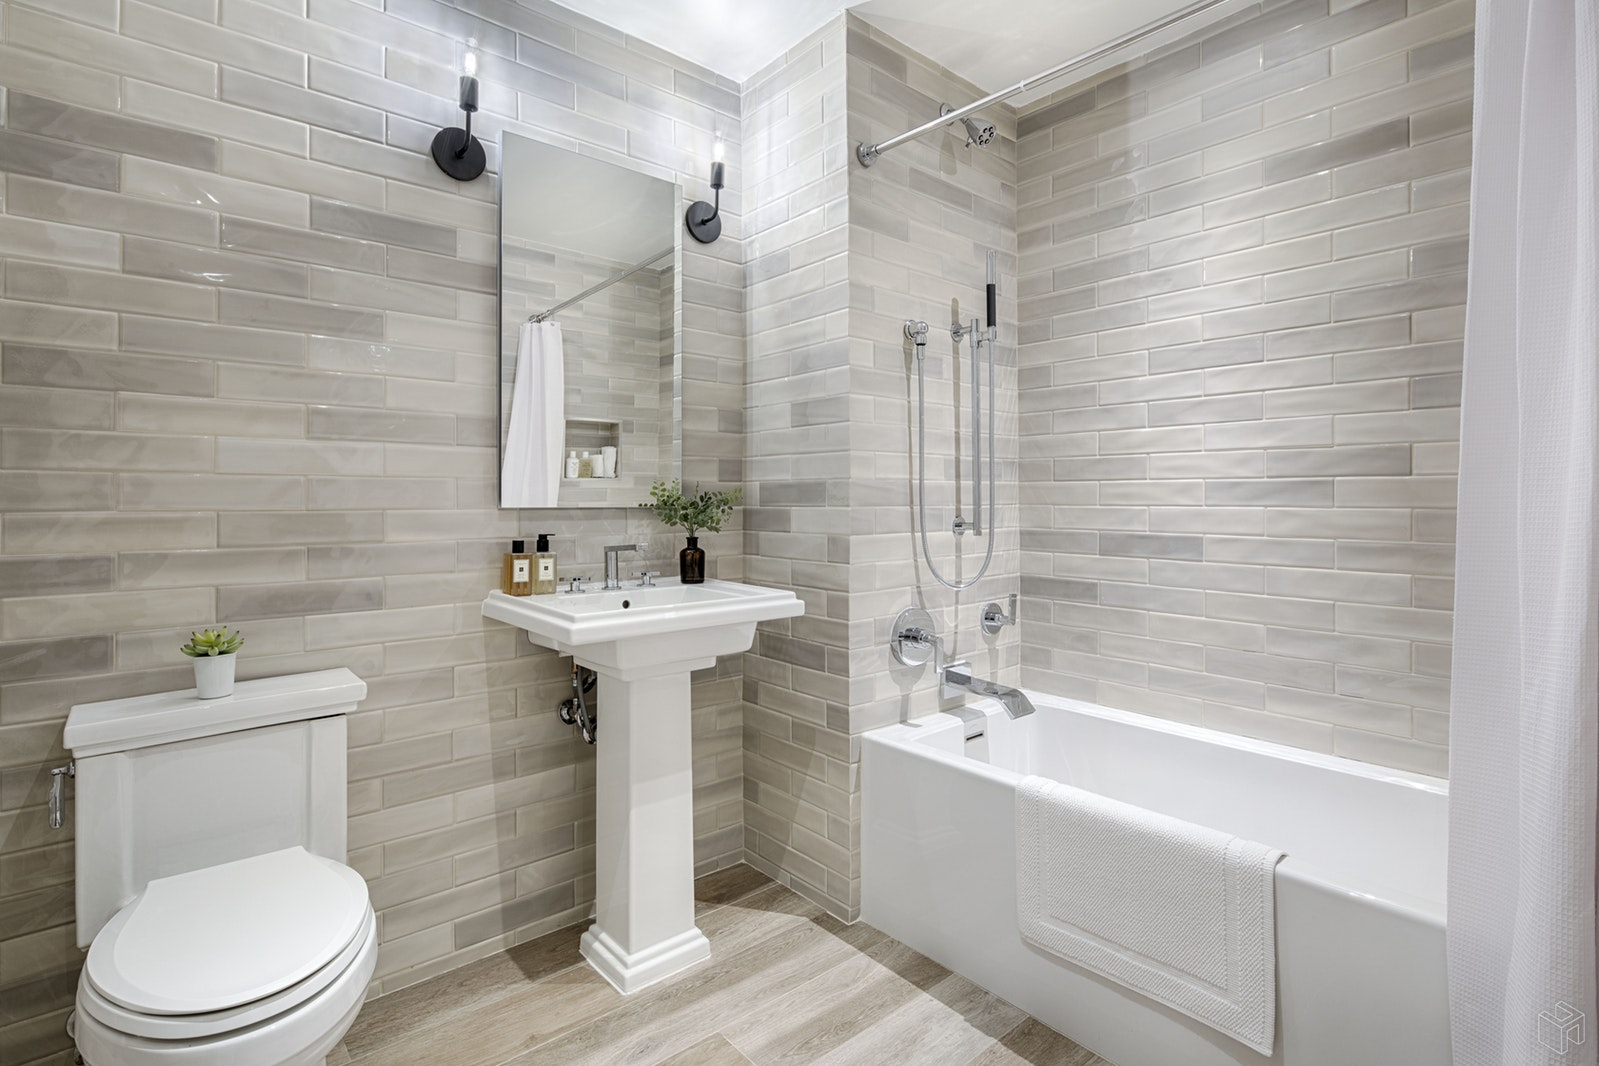 488 Fourth Avenue 10, Park Slope, Brooklyn, NY, 11215, $1,325,000, Property For Sale, Halstead Real Estate, Photo 8